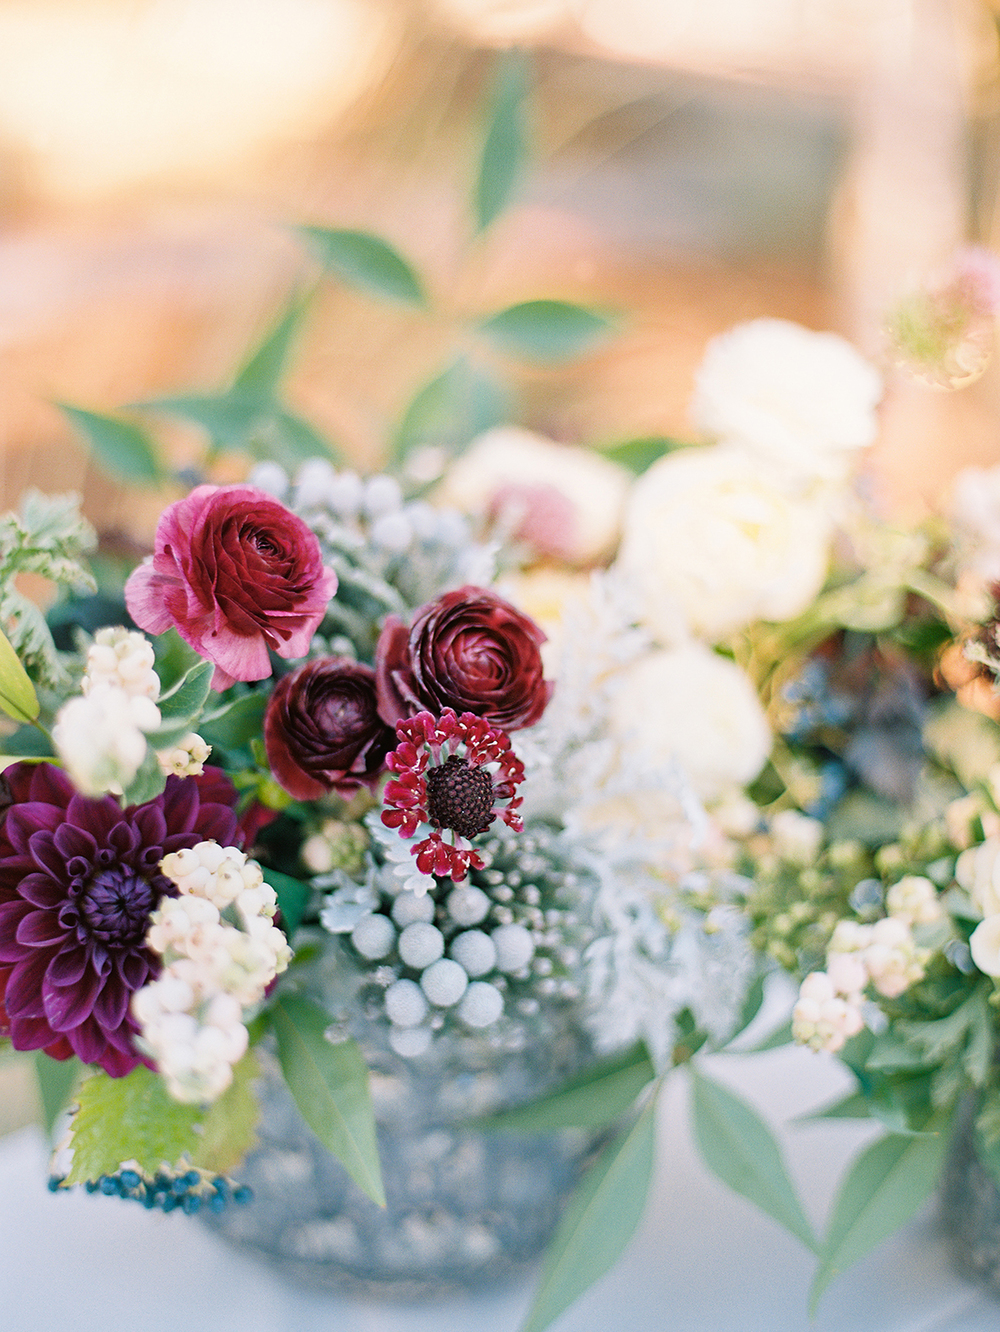 Heirloom Floral Design - Bend Weddings -Farmer florist-Locally grown- Oregon grown-Slow flowers-Centerpieces -Private residence Cline falls 2.jpg